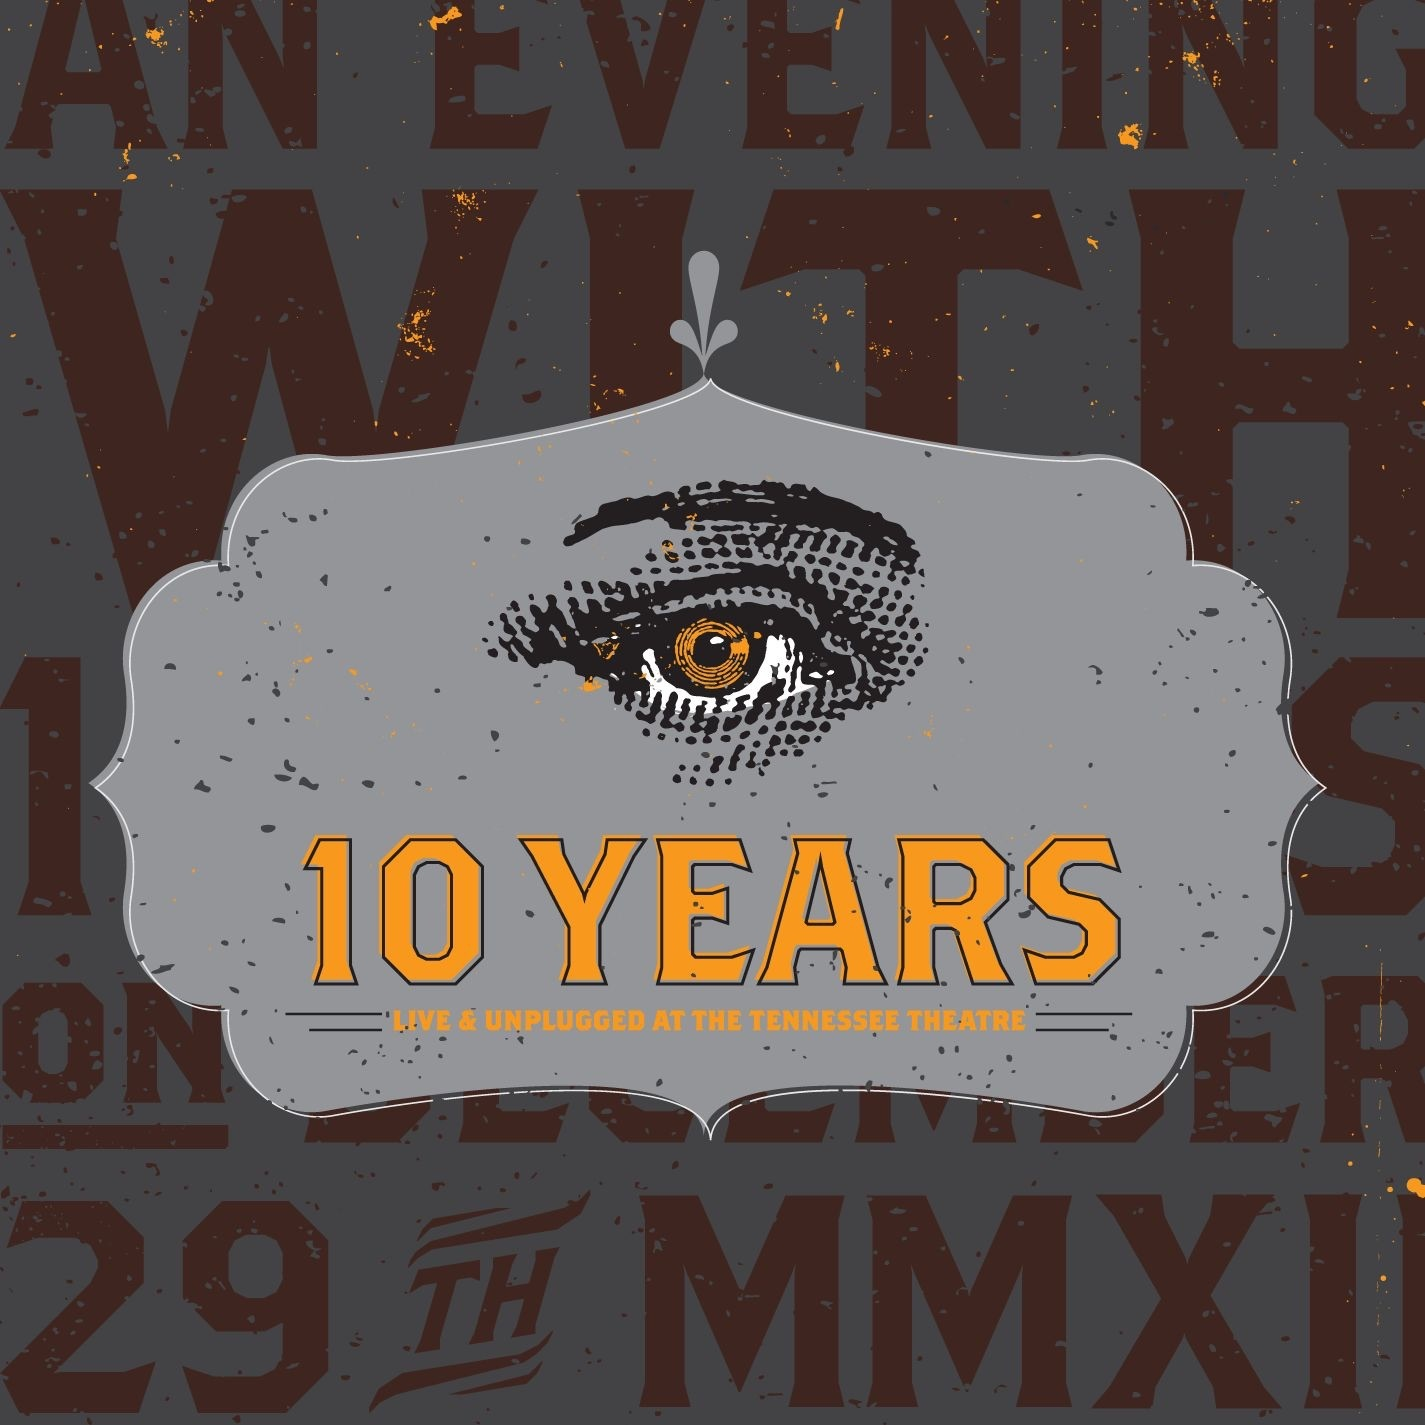 10 Years album Live & Unplugged At The Tennessee Theatre